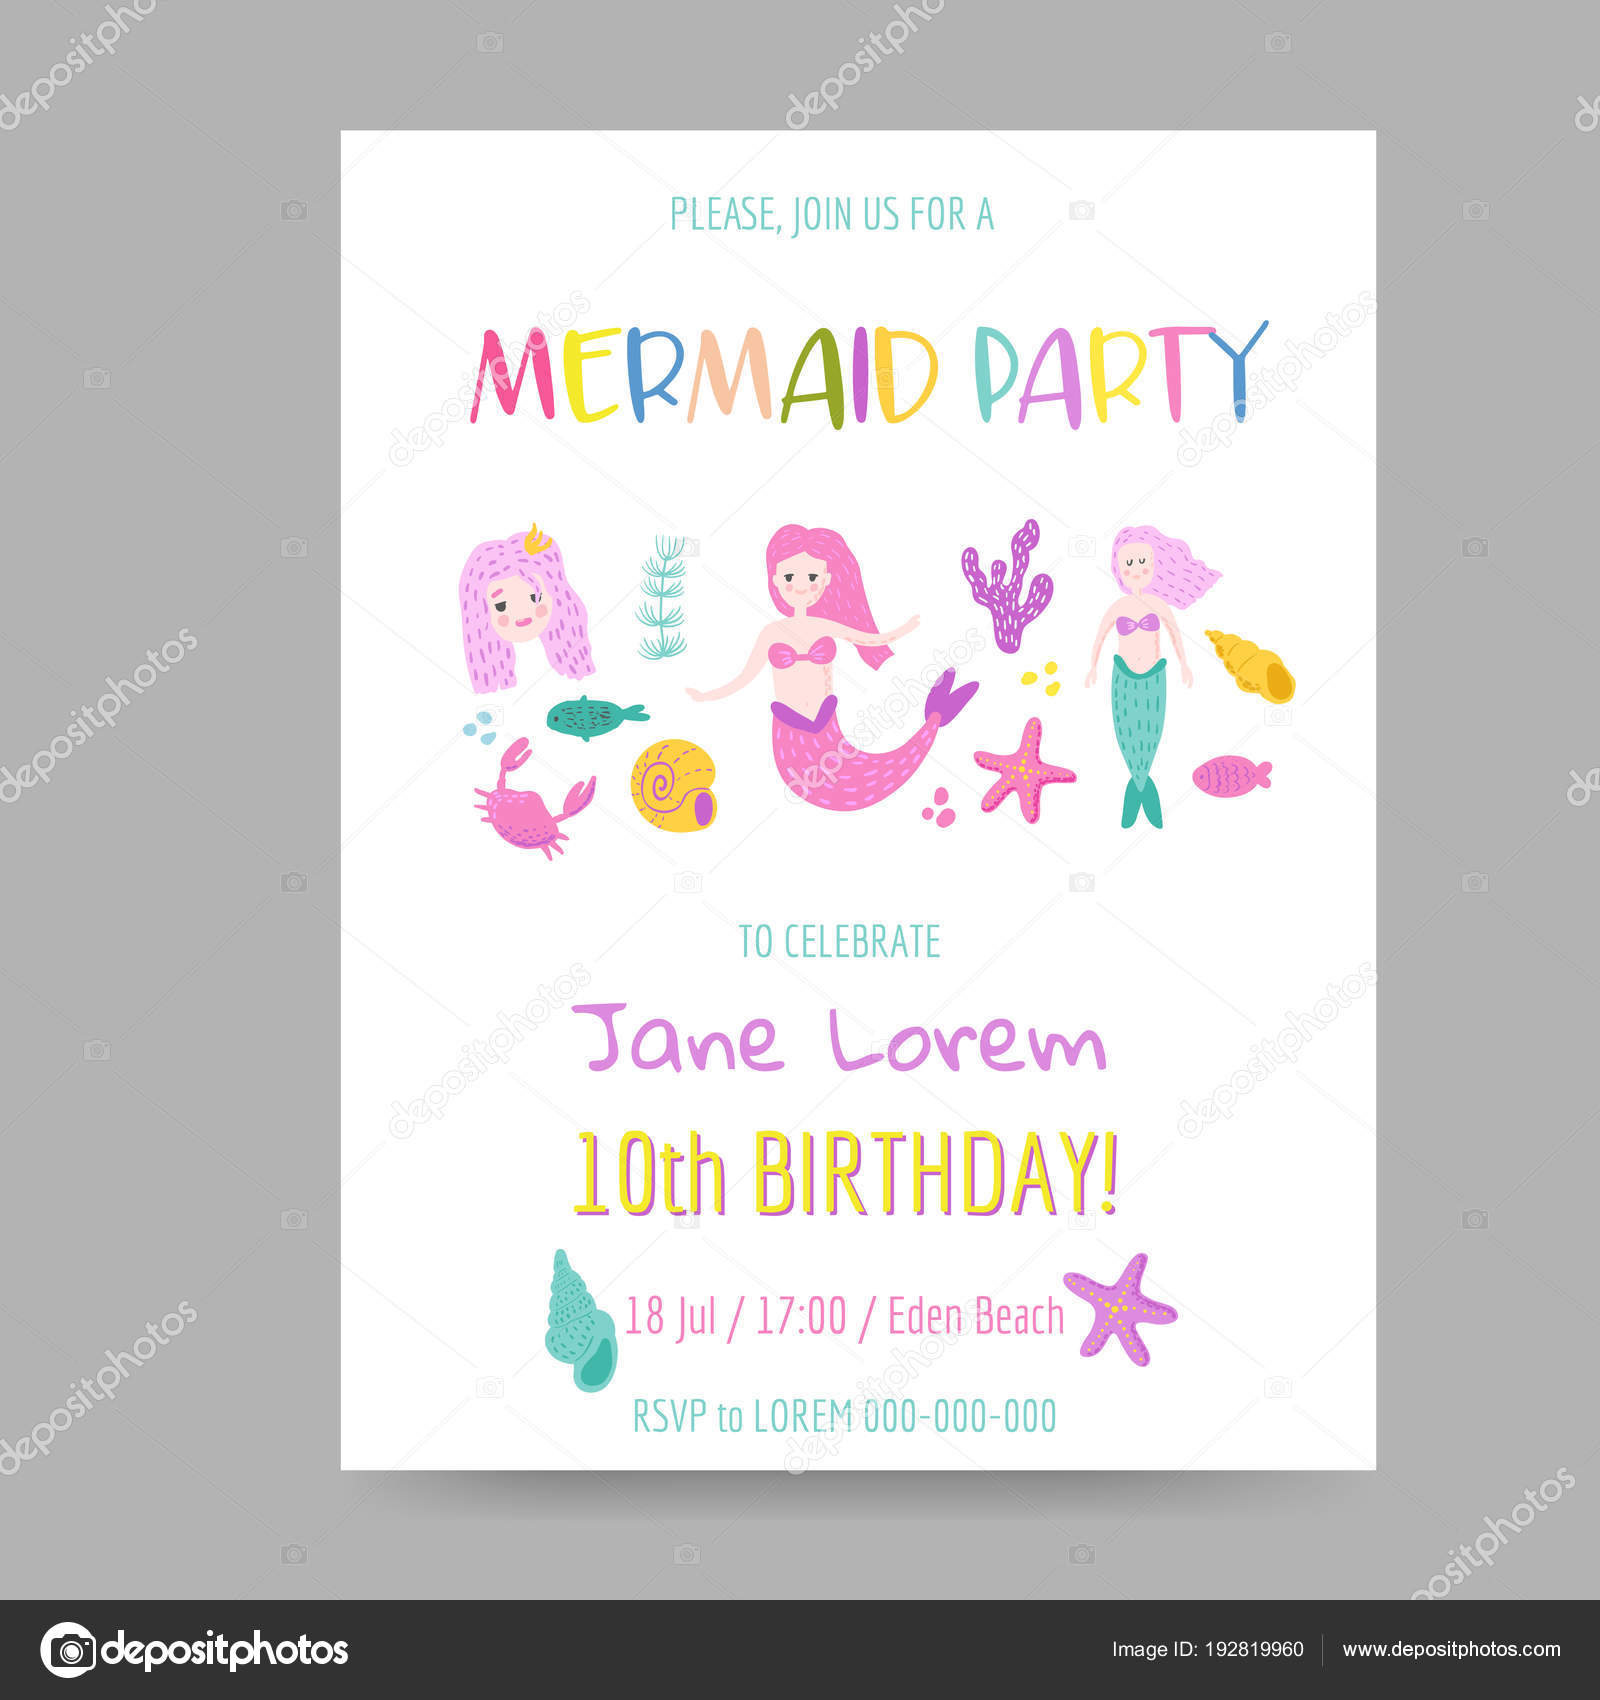 Childish Birthday Invitation Template with Cute Mermaid and Underwater Creatures. Girls Celebration Party Decoration. Hand Drawn Greeting, Baby Shower.